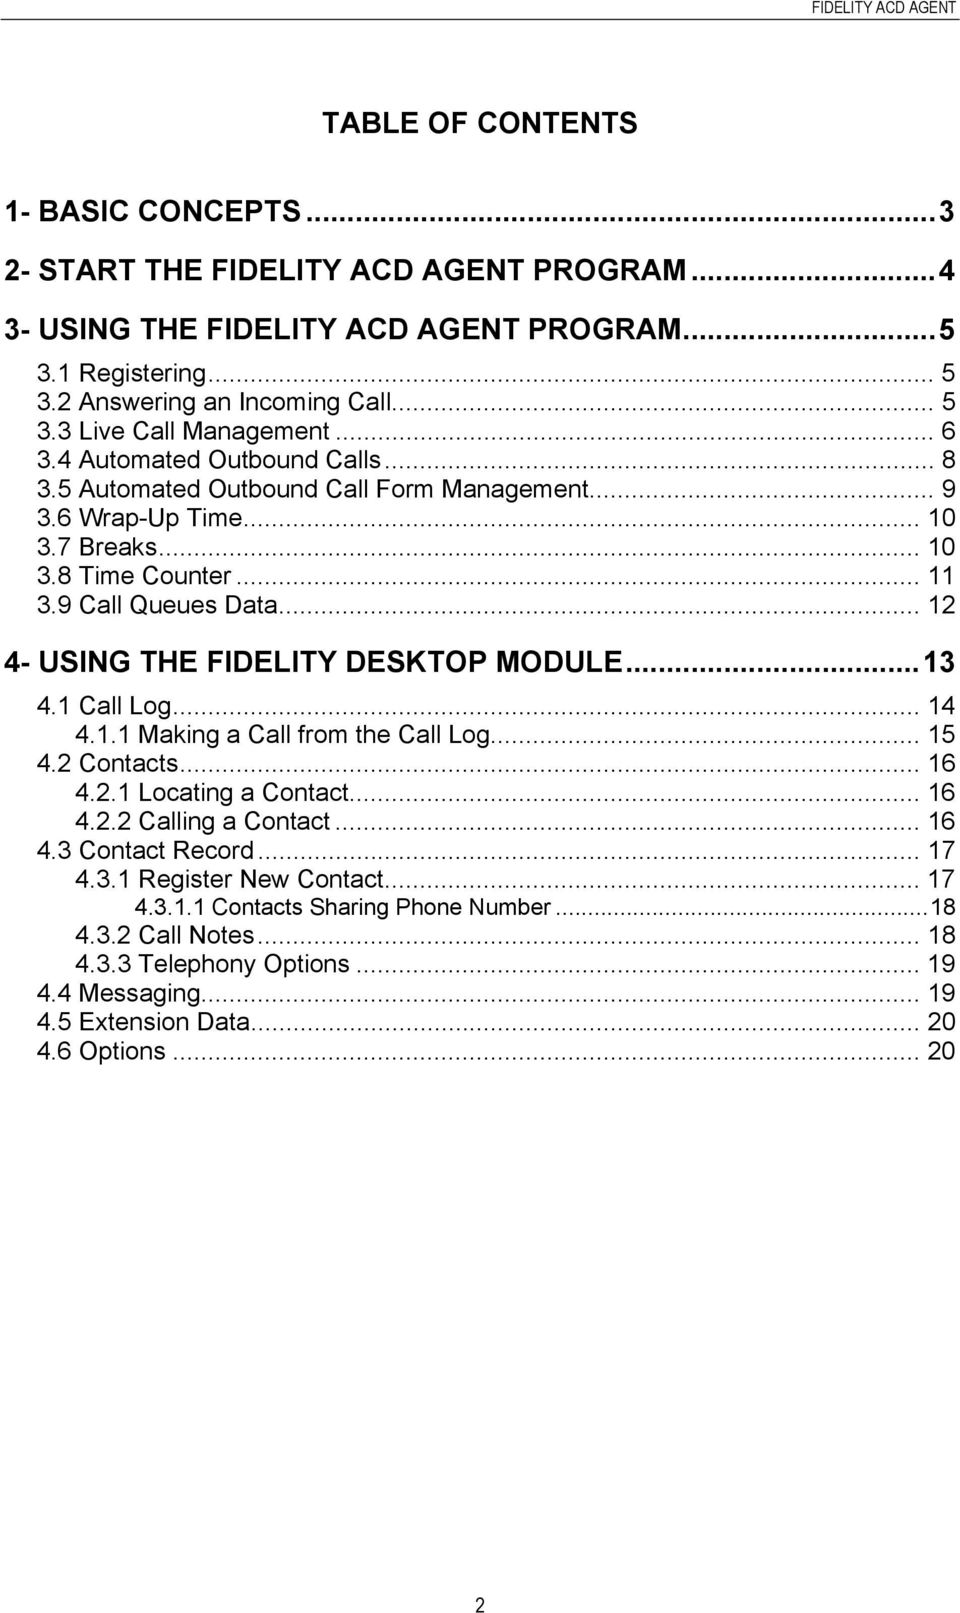 .. 12 4- USING THE FIDELITY DESKTOP MODULE...13 4.1 Call Log... 14 4.1.1 Making a Call from the Call Log... 15 4.2 Contacts... 16 4.2.1 Locating a Contact... 16 4.2.2 Calling a Contact... 16 4.3 Contact Record.